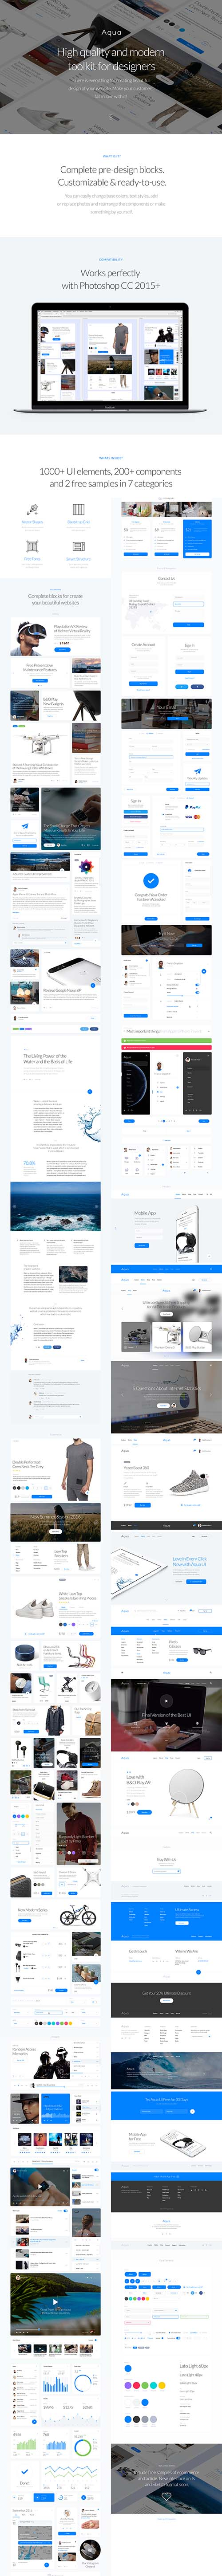 Aqua - Aqua Web UI Kit for Photoshop